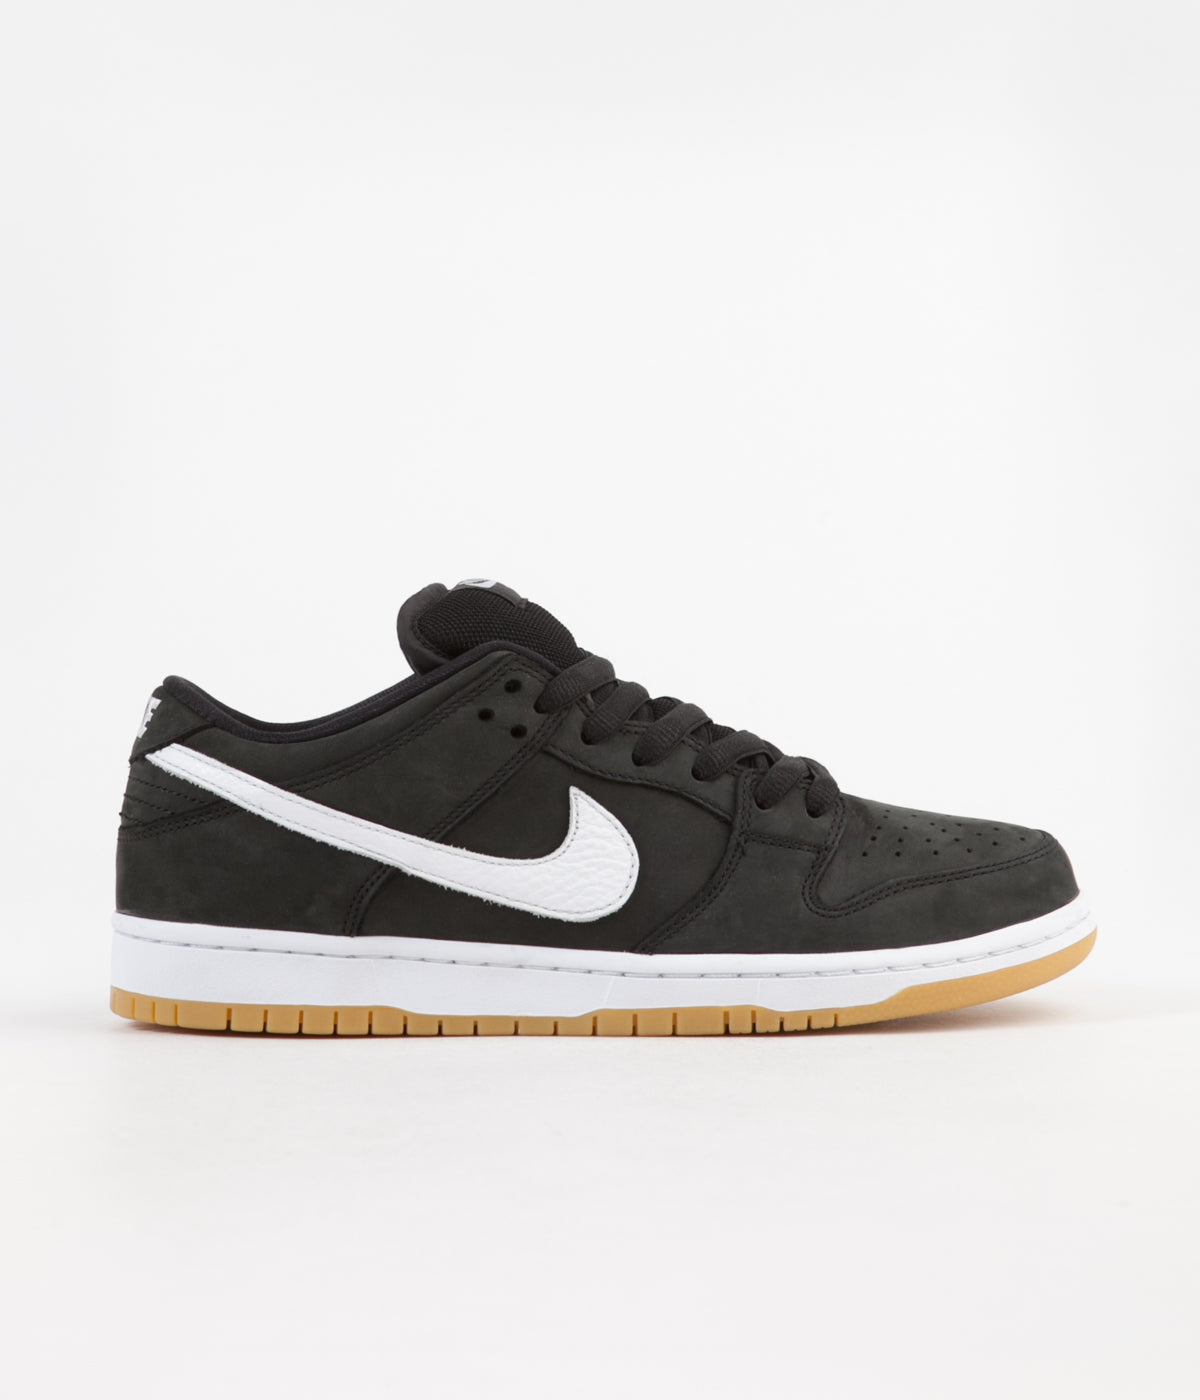 the latest 9af98 31bfc Nike SB Orange Label Dunk Low Pro Shoes - Black  White - Black